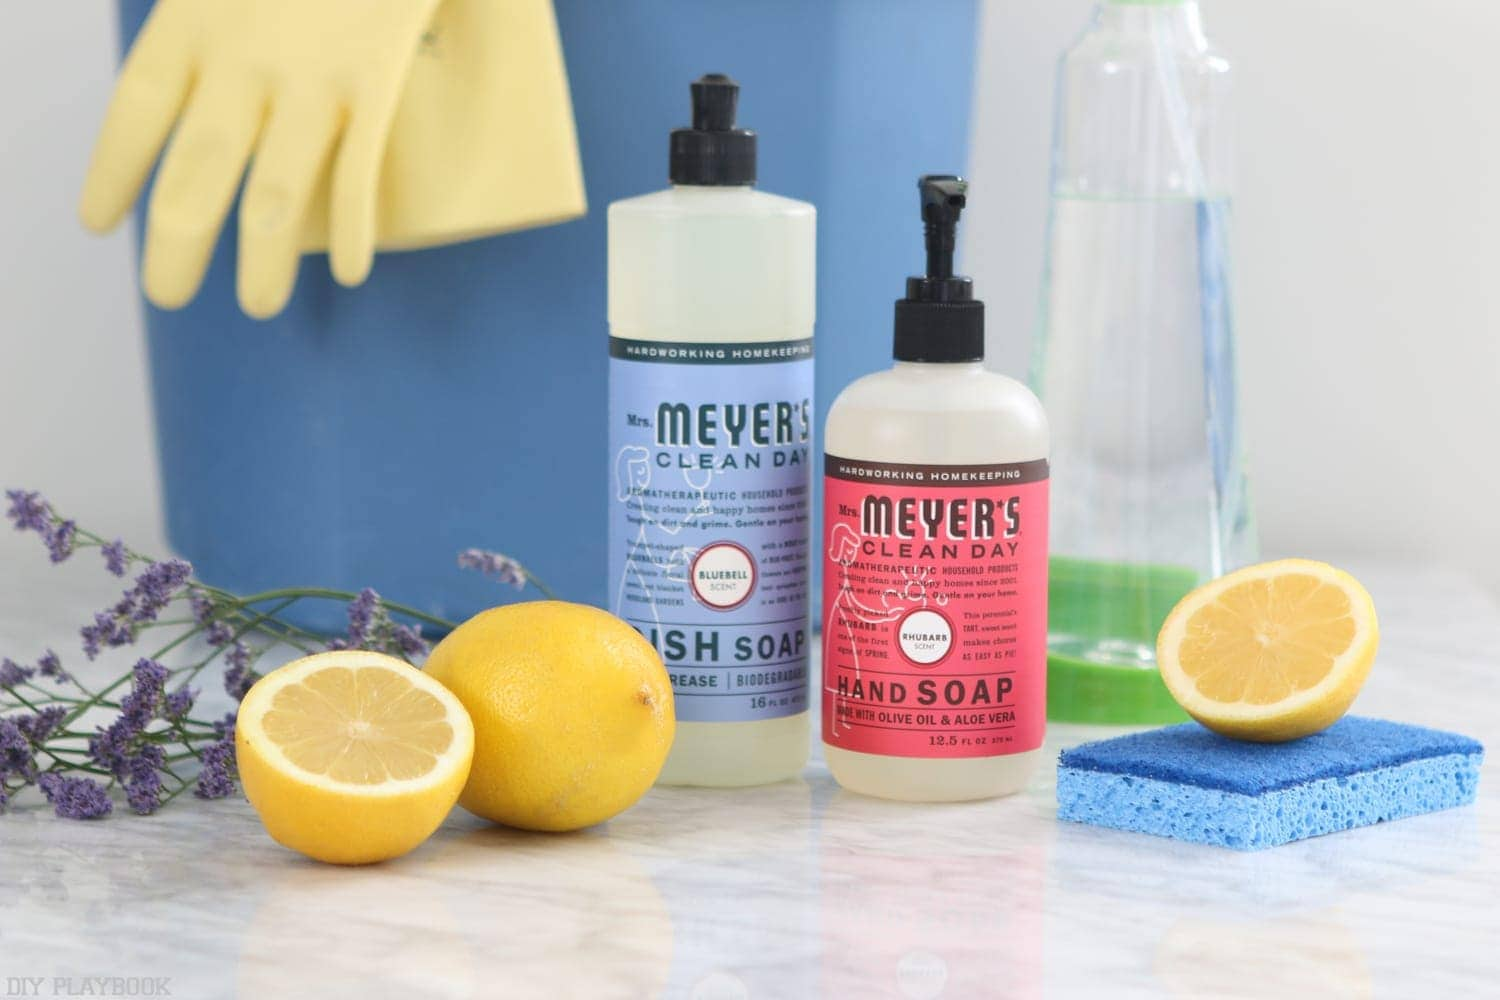 Cleaning essentials; lavender and lemon, dish soap, hand soap, dish sponge and a cleaning bucket with dish gloves.